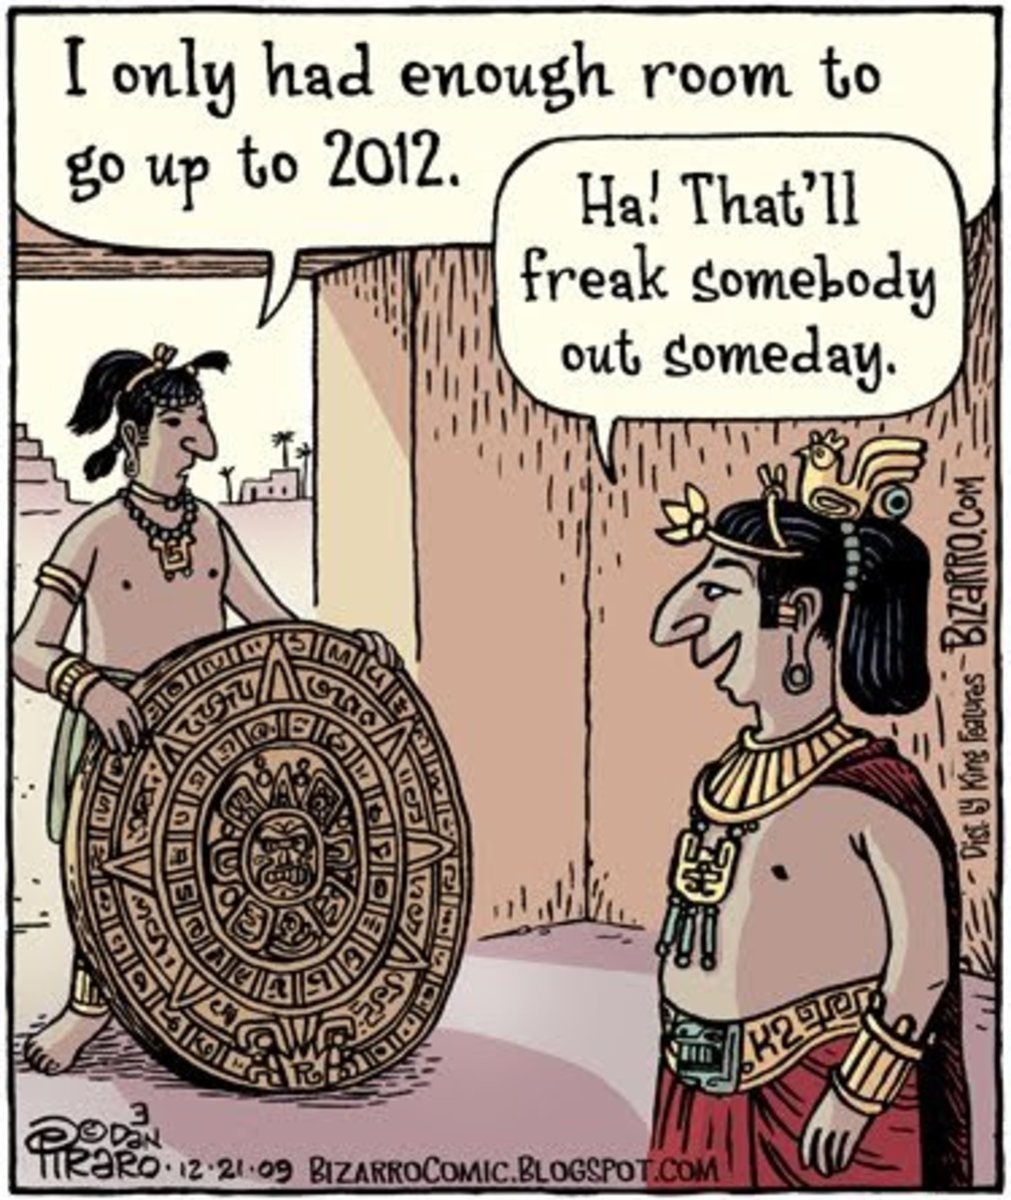 3 Days left in 2012 until the Mayan Apocalypse and the World comes to an END